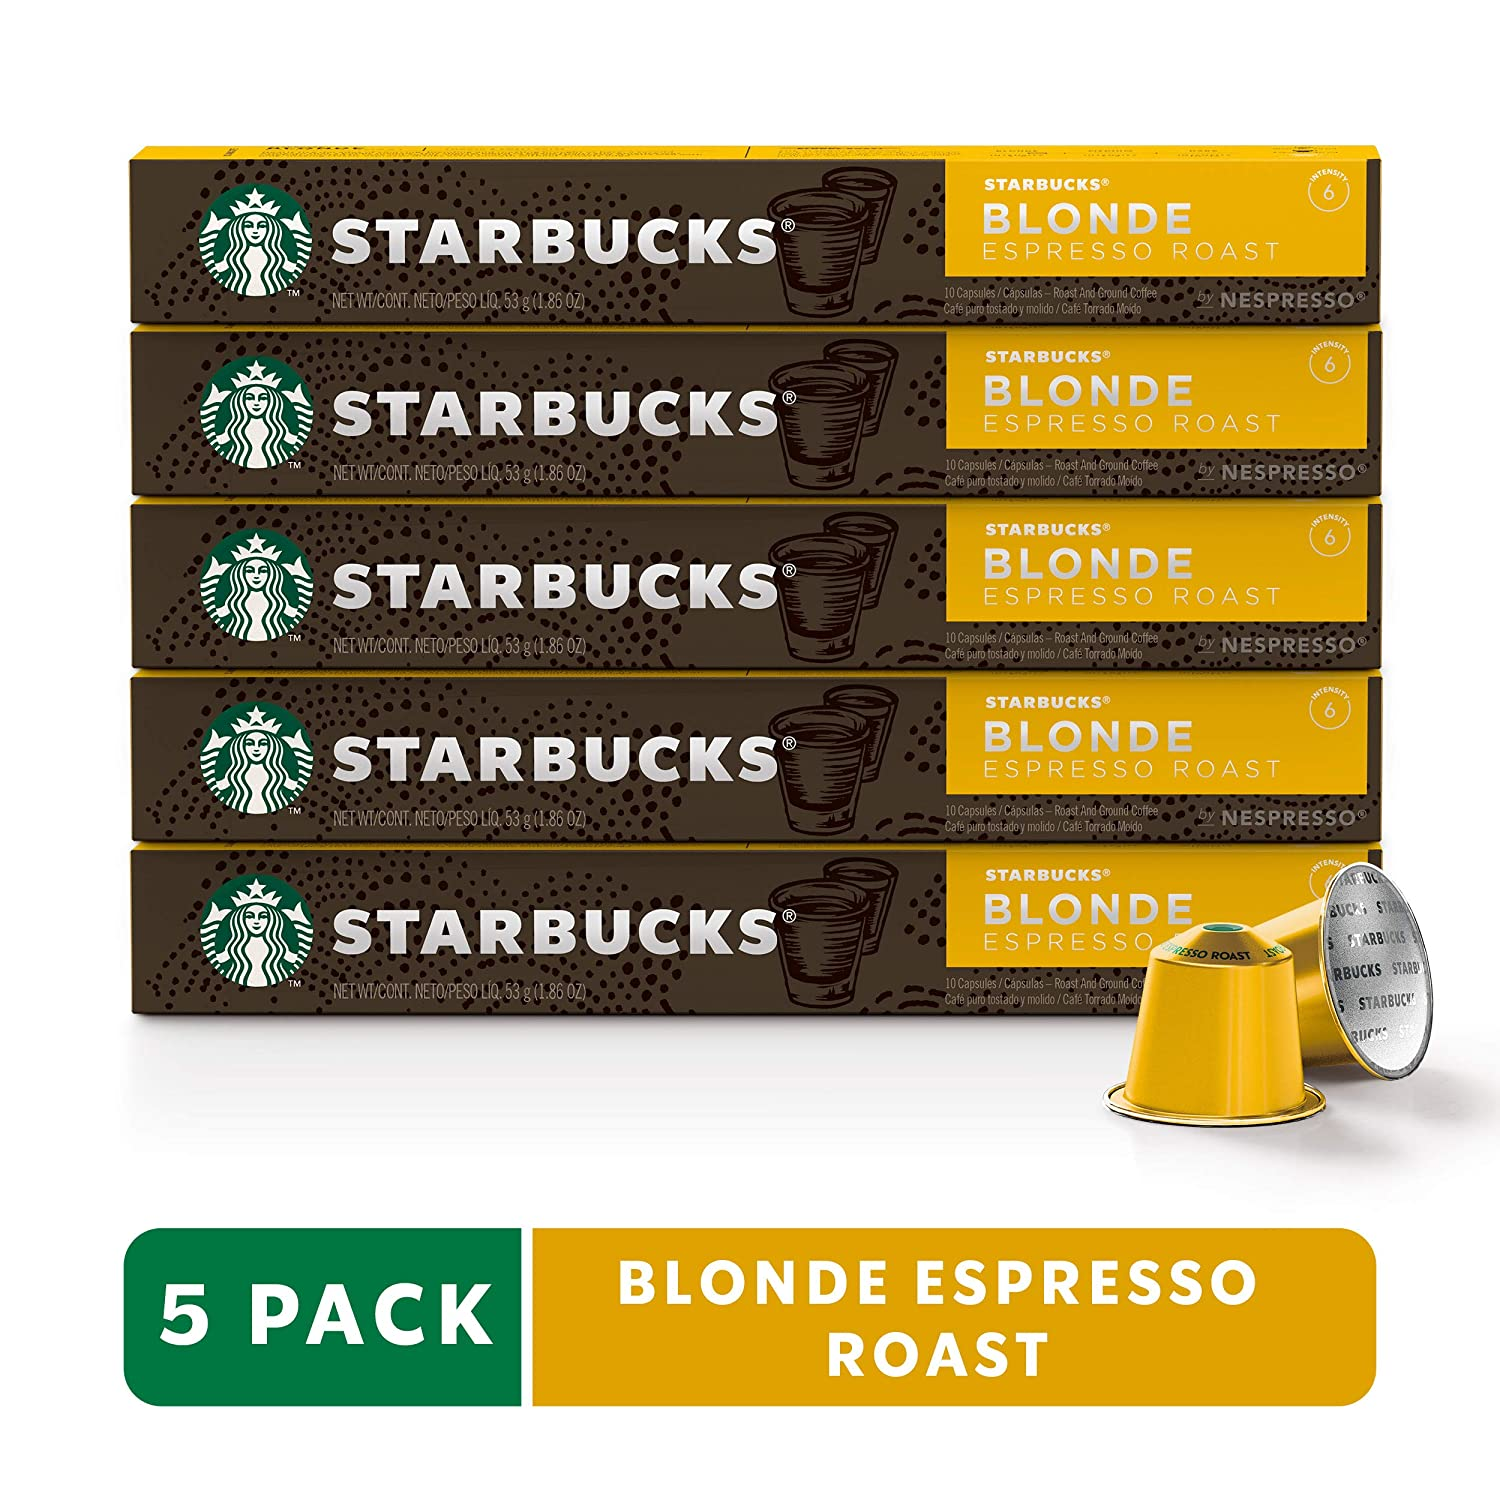 Starbucks by Nespresso, Blonde Roast Espresso (50-count single serve capsules, compatible with Nespresso Original Line System)